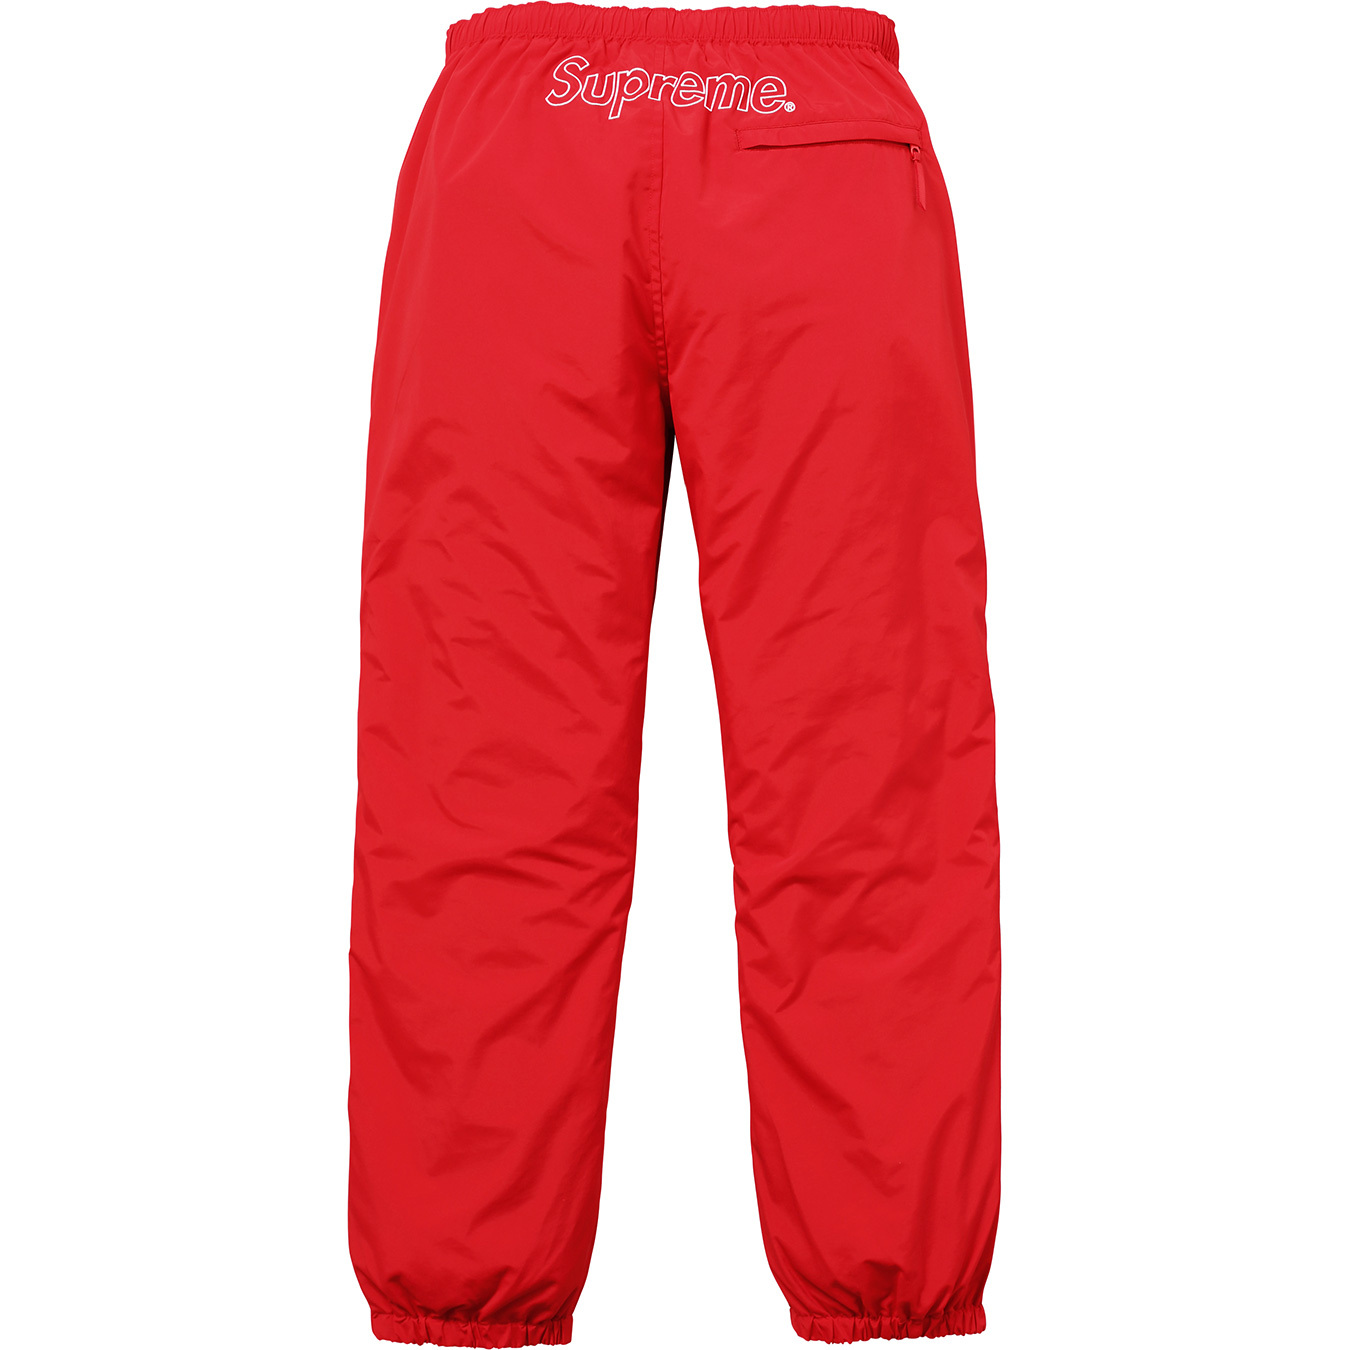 supreme-2017aw-fall-winter-piping-track-pant